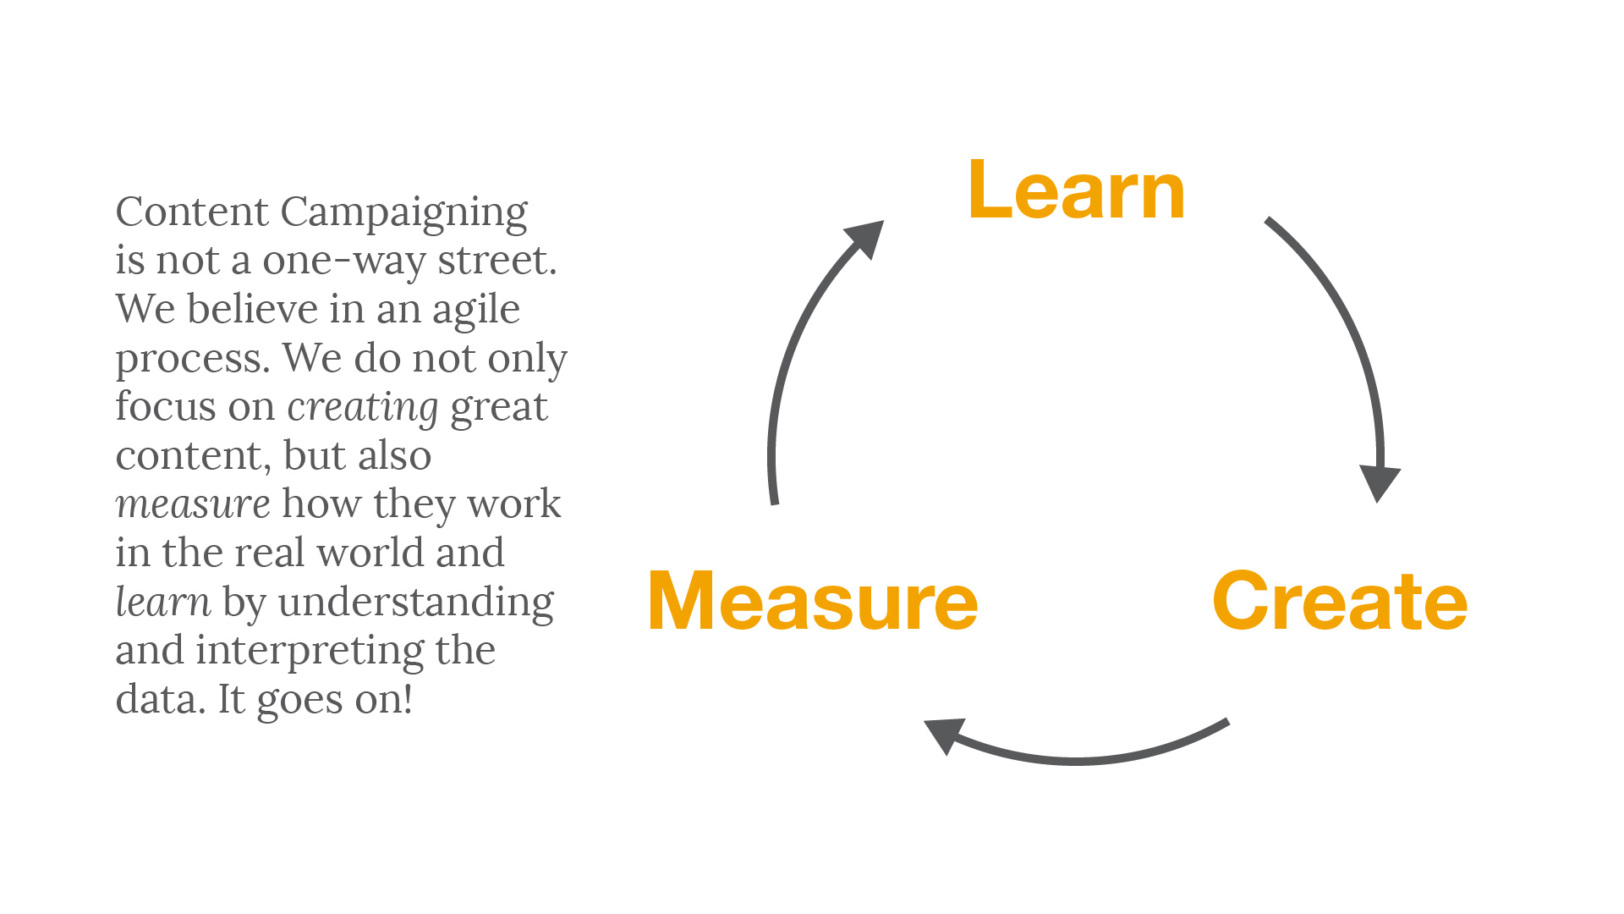 Learn-Create-Measure